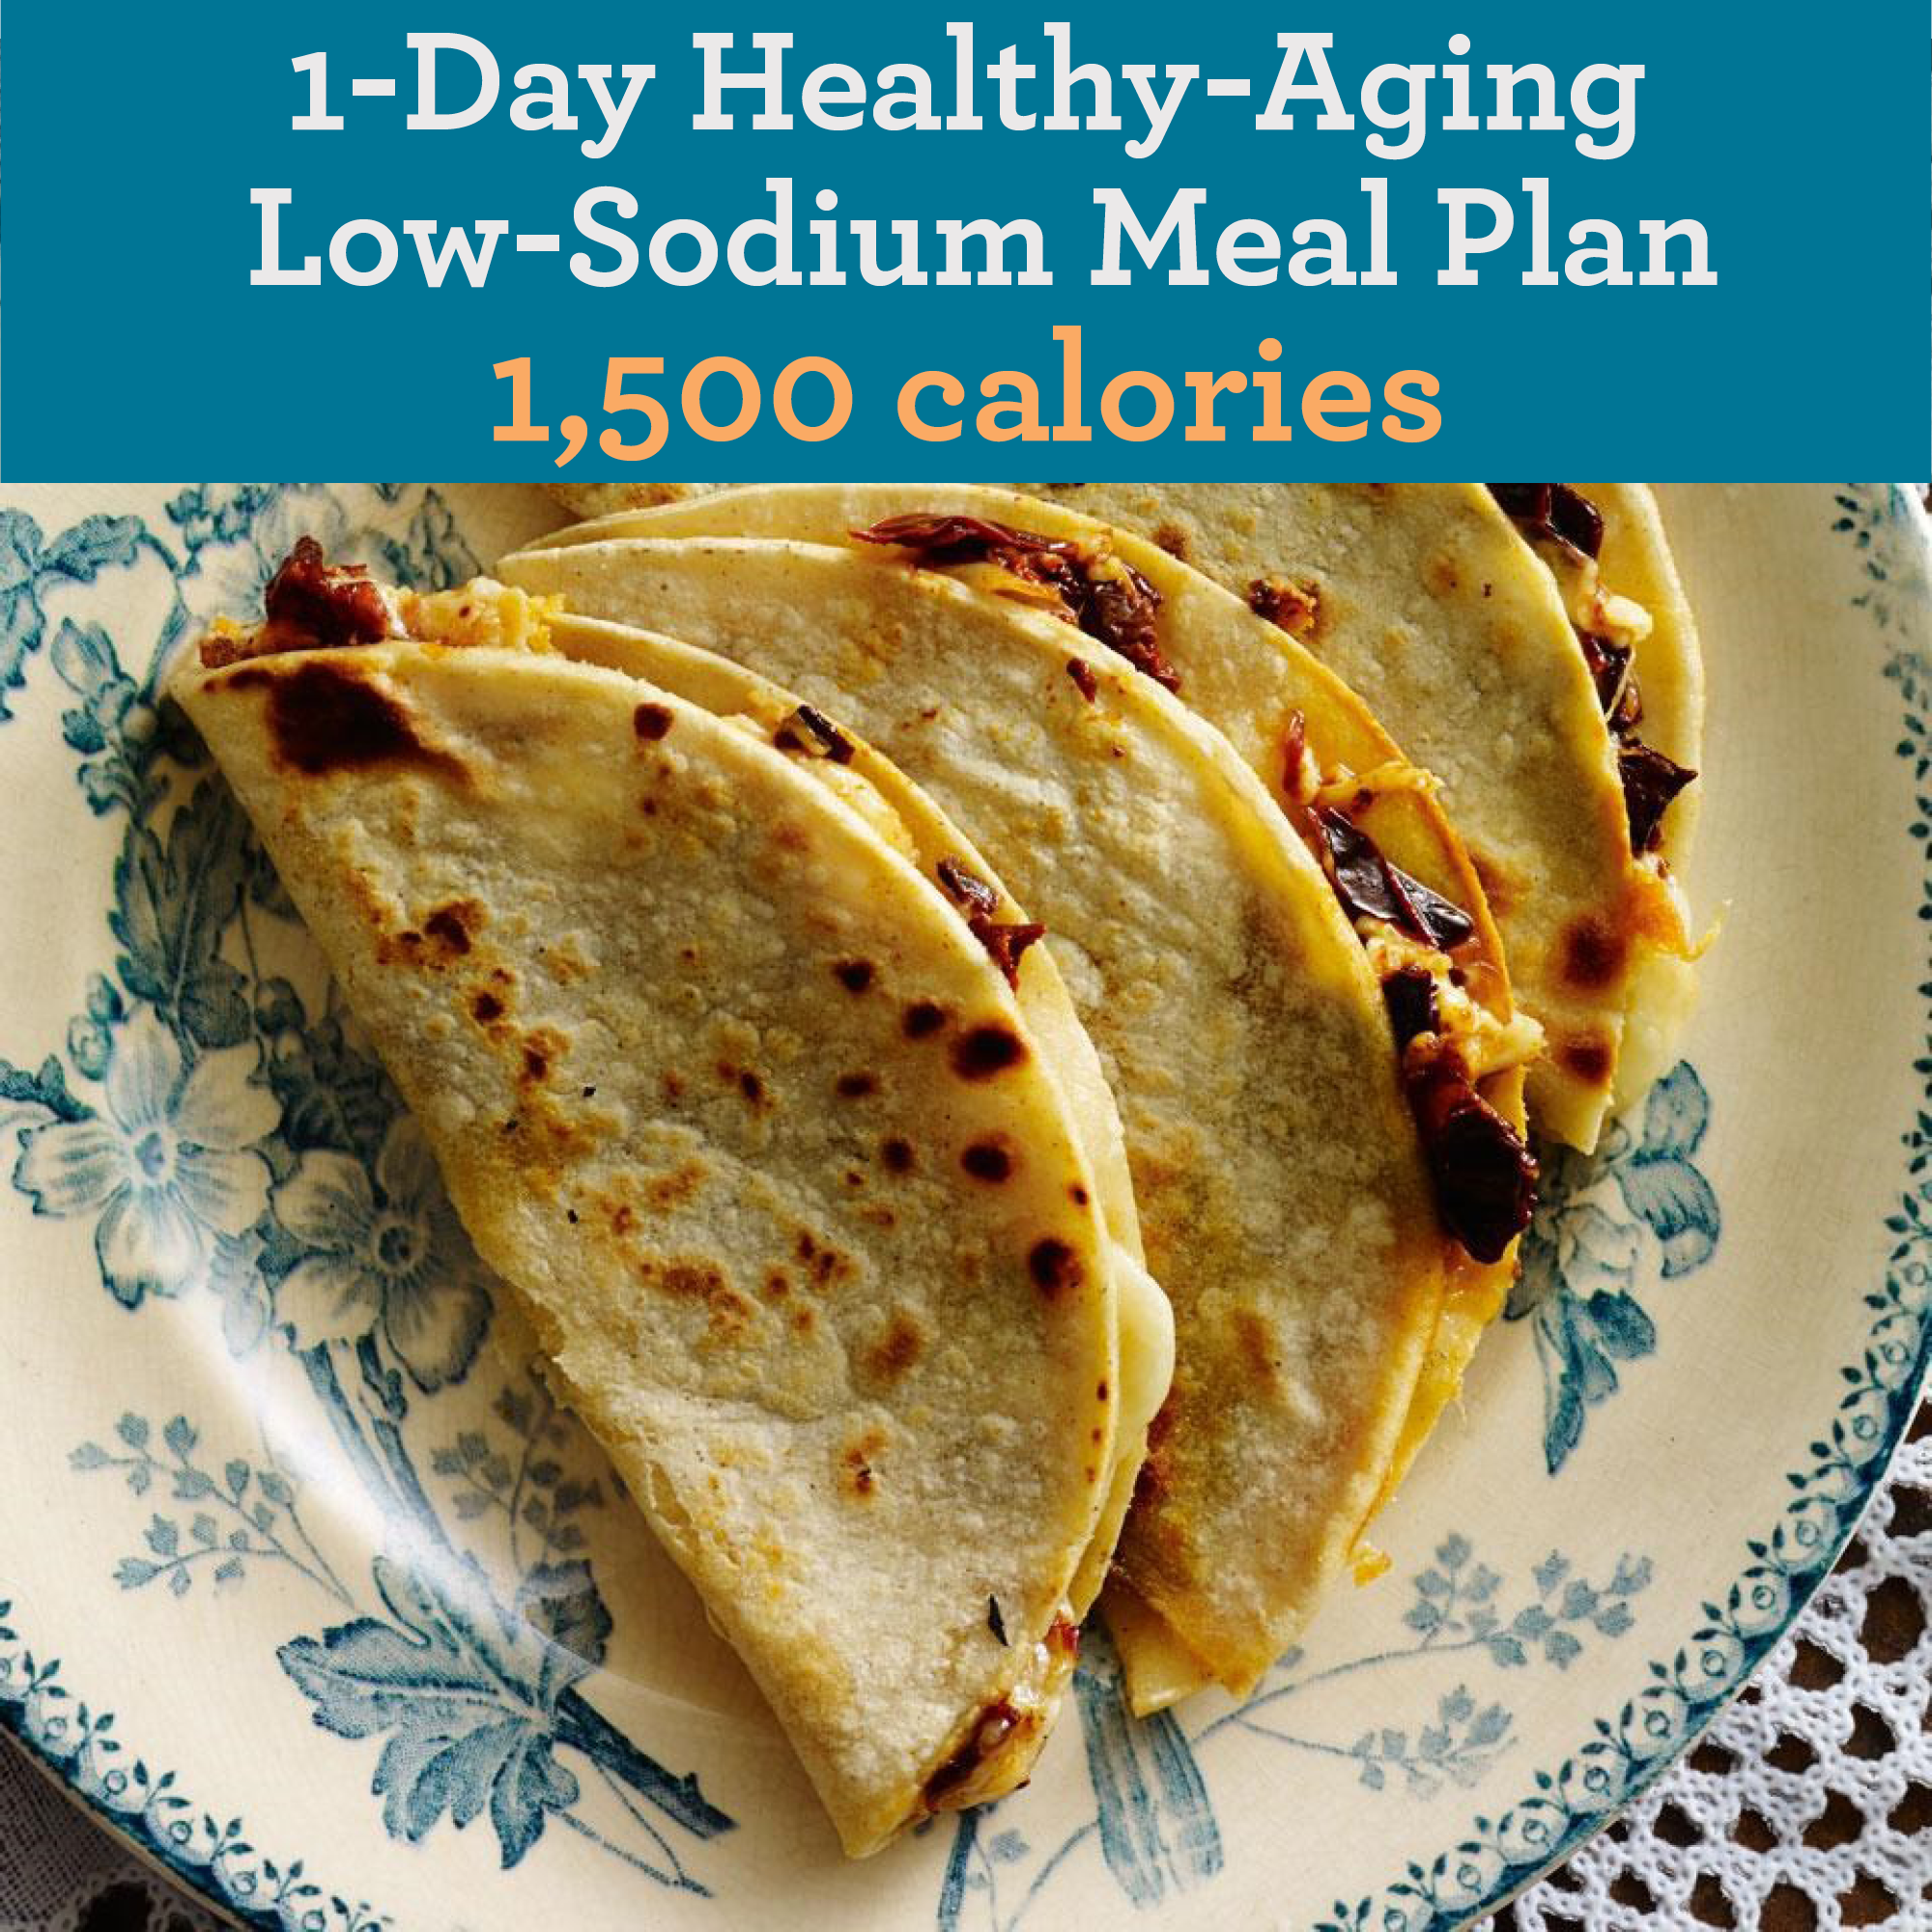 Low-Sodium Healthy-Aging Meal Plan: 1,500 Calories